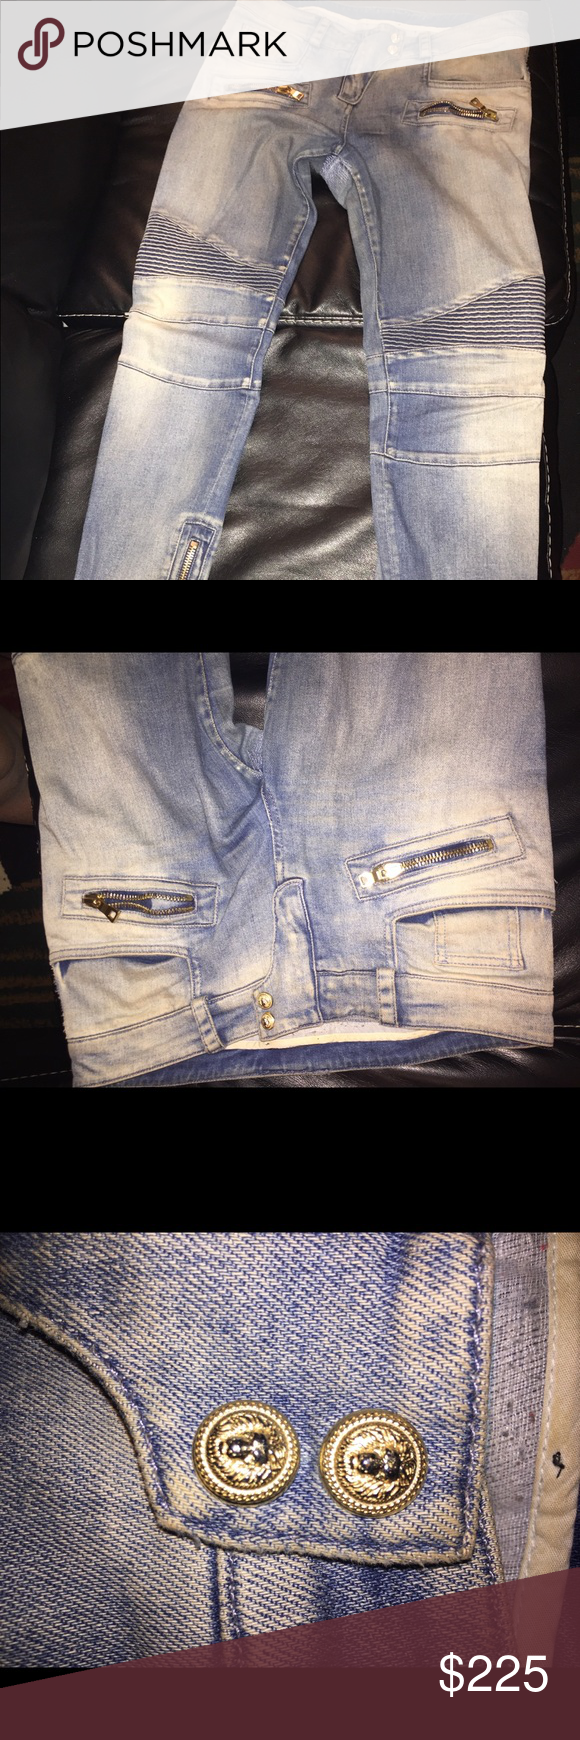 64b487f8 Authentic Balmain Jeans 100% authentic Balmain Biker Jeans. •Medium Wash  •Gold Hardware •Worn •These Jeans have been repaired between thigh; high  quality ...